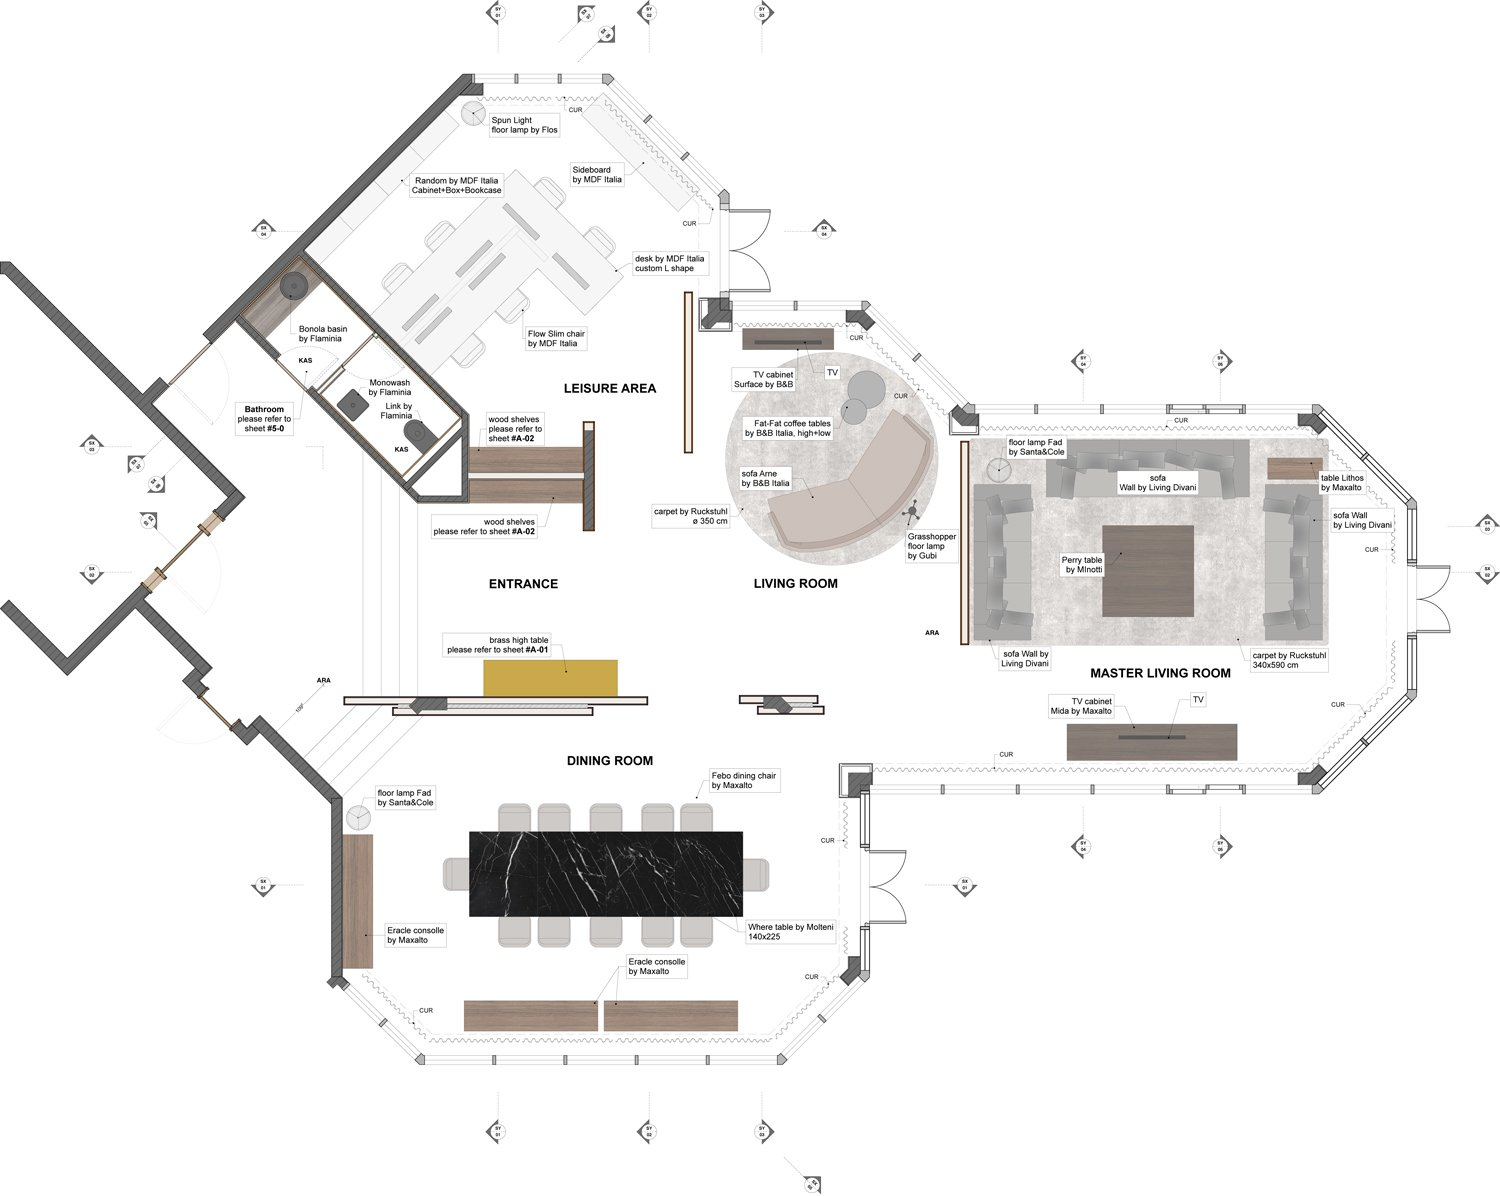 Plan of the penthouse duccio grassi architects}